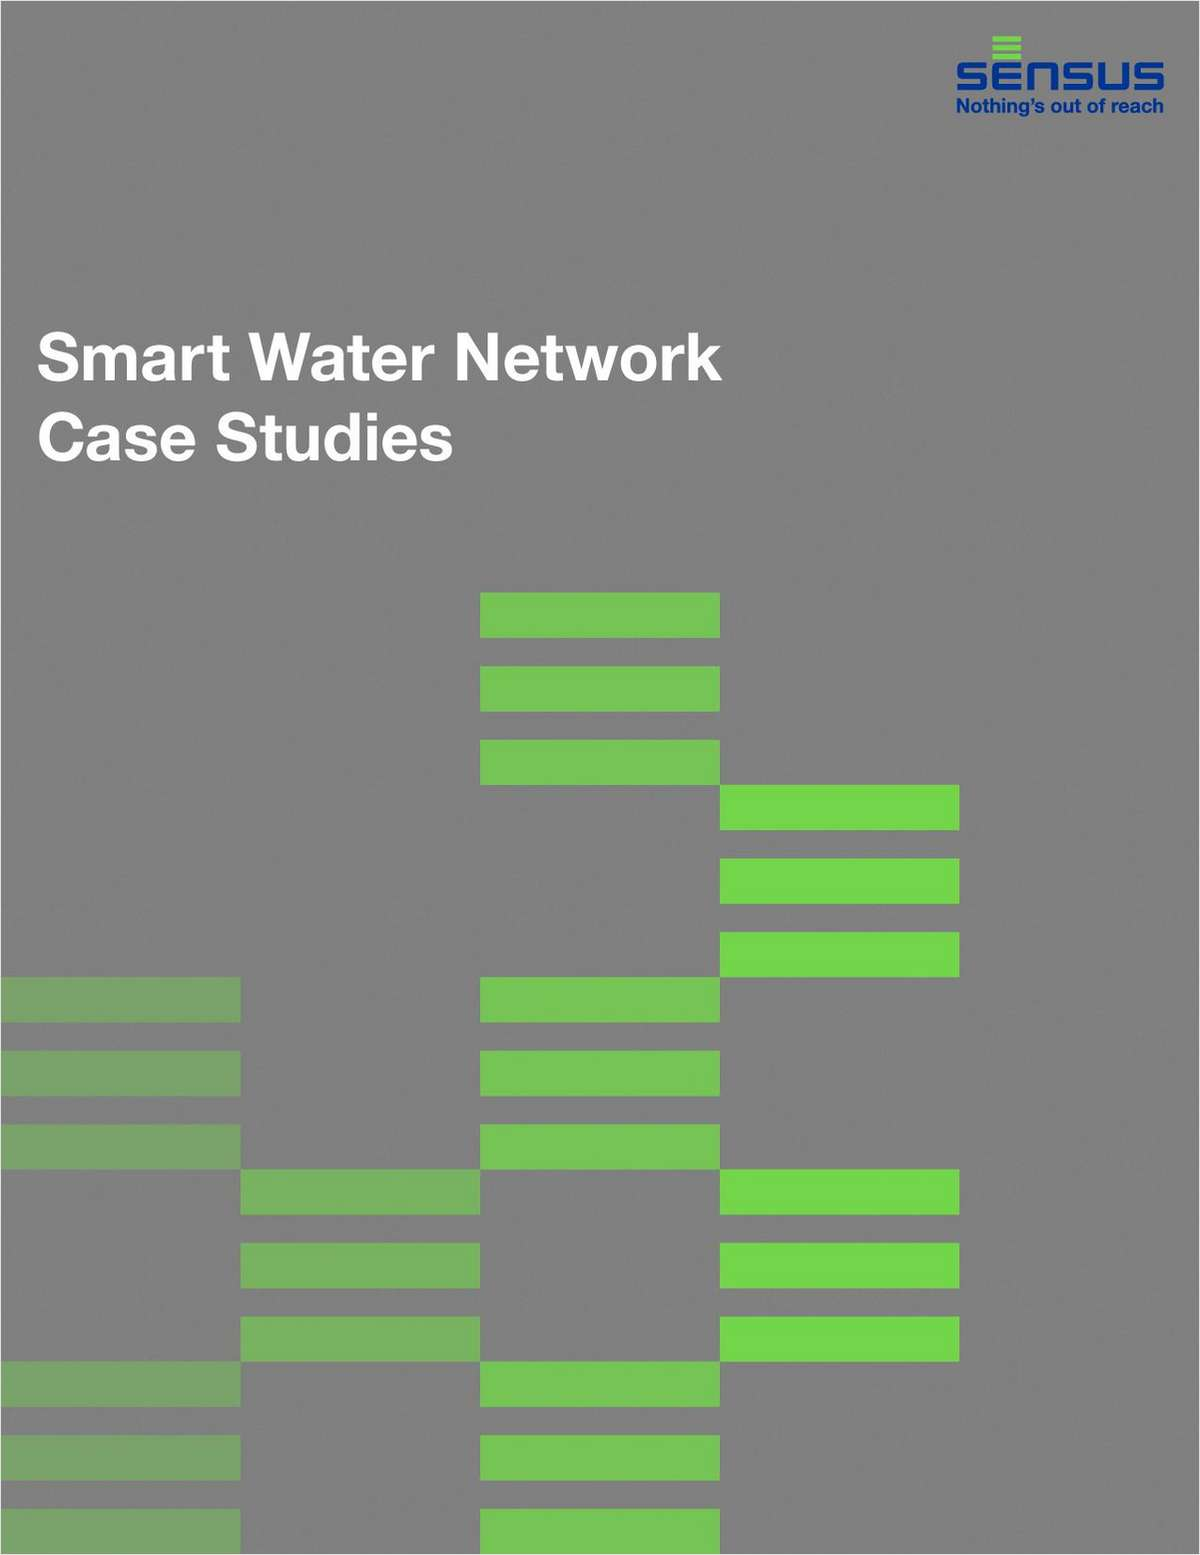 Smart Water Networks: Tips to Measure & Conserve Water